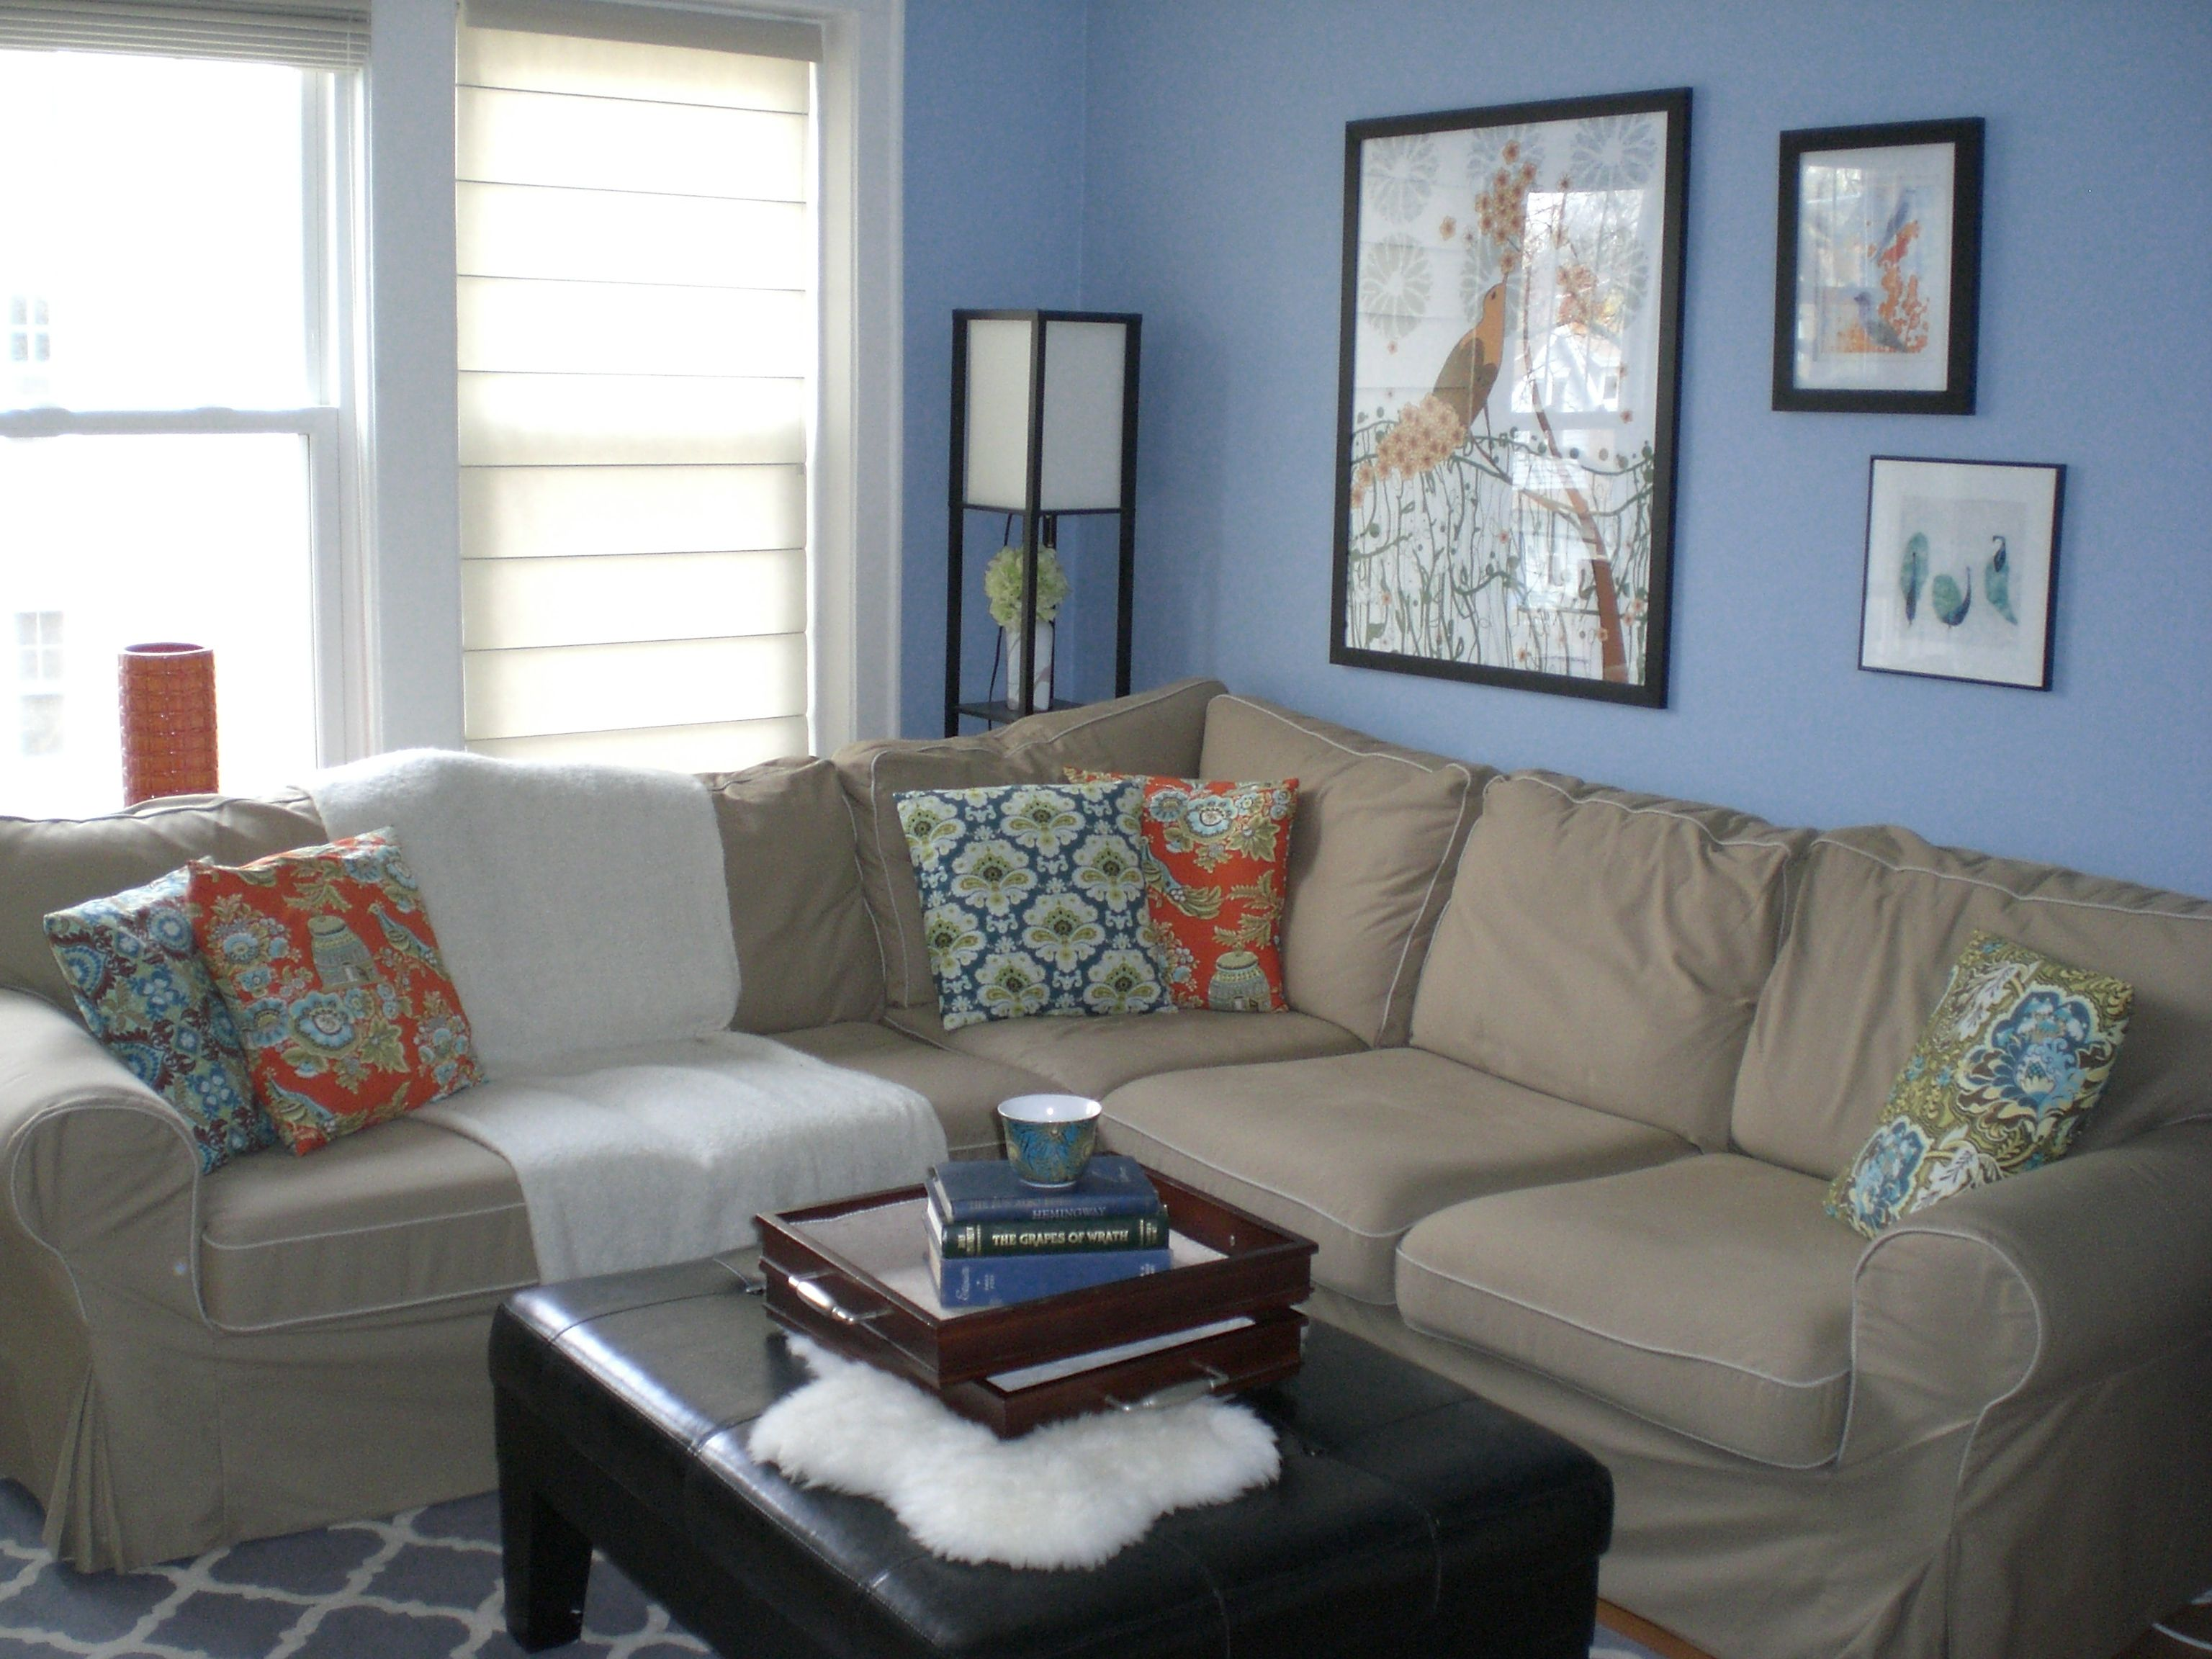 Living room blue paint color ideas - Light Blue Paint Colors For Living Room Xrkotdh